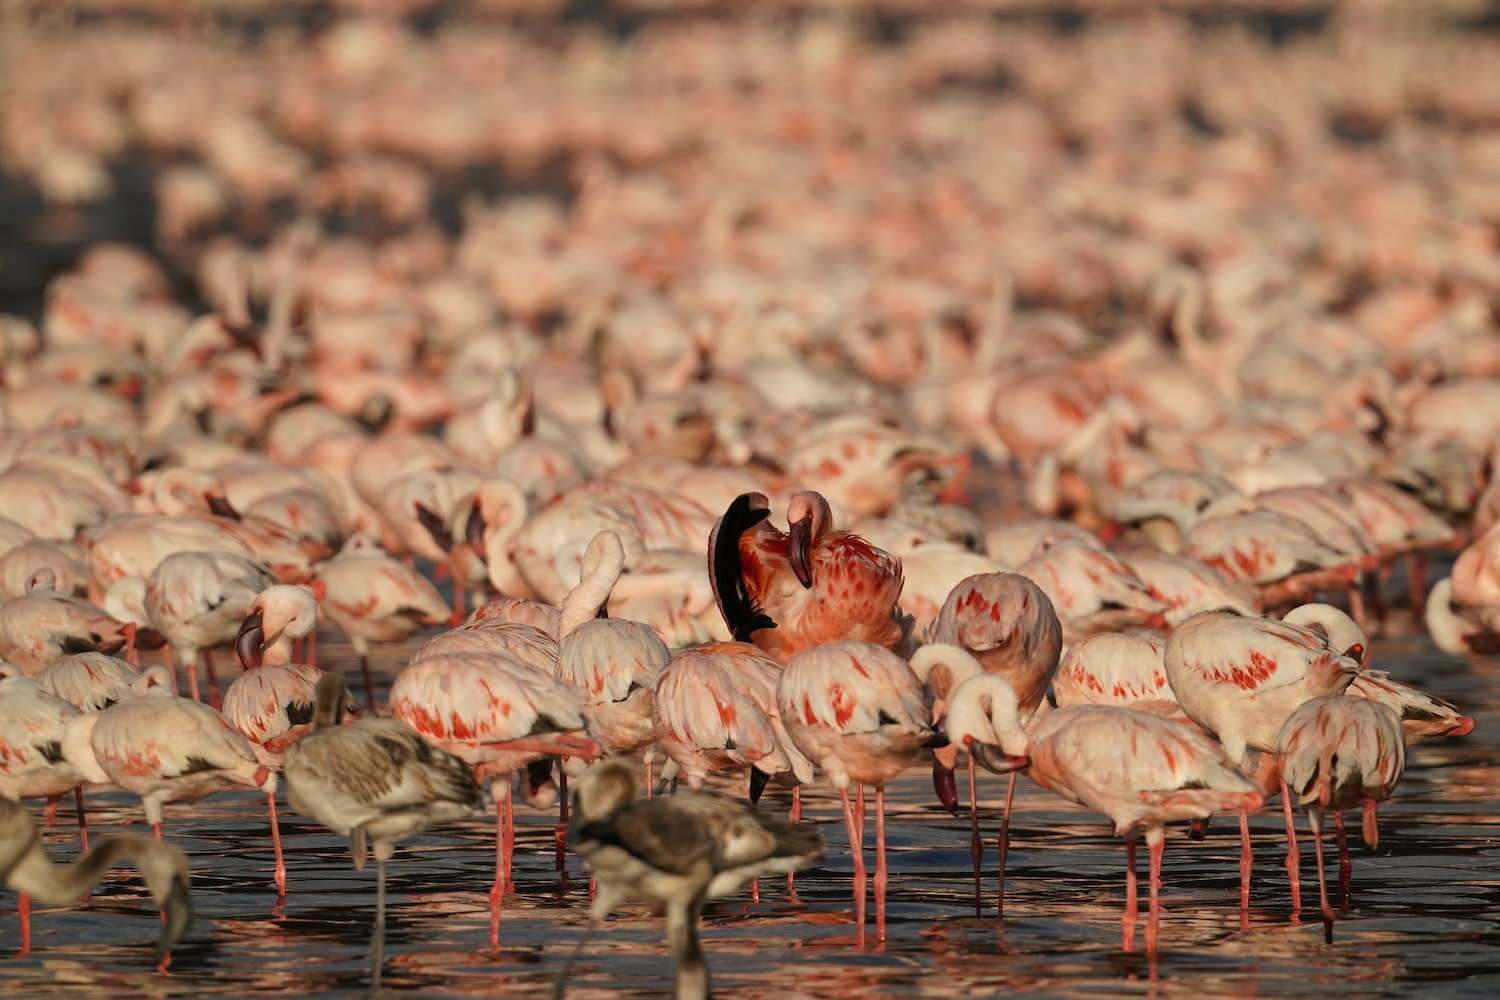 flock-of-flamingos-standing-in-lake-in-the-golden-hour-alpha-7III